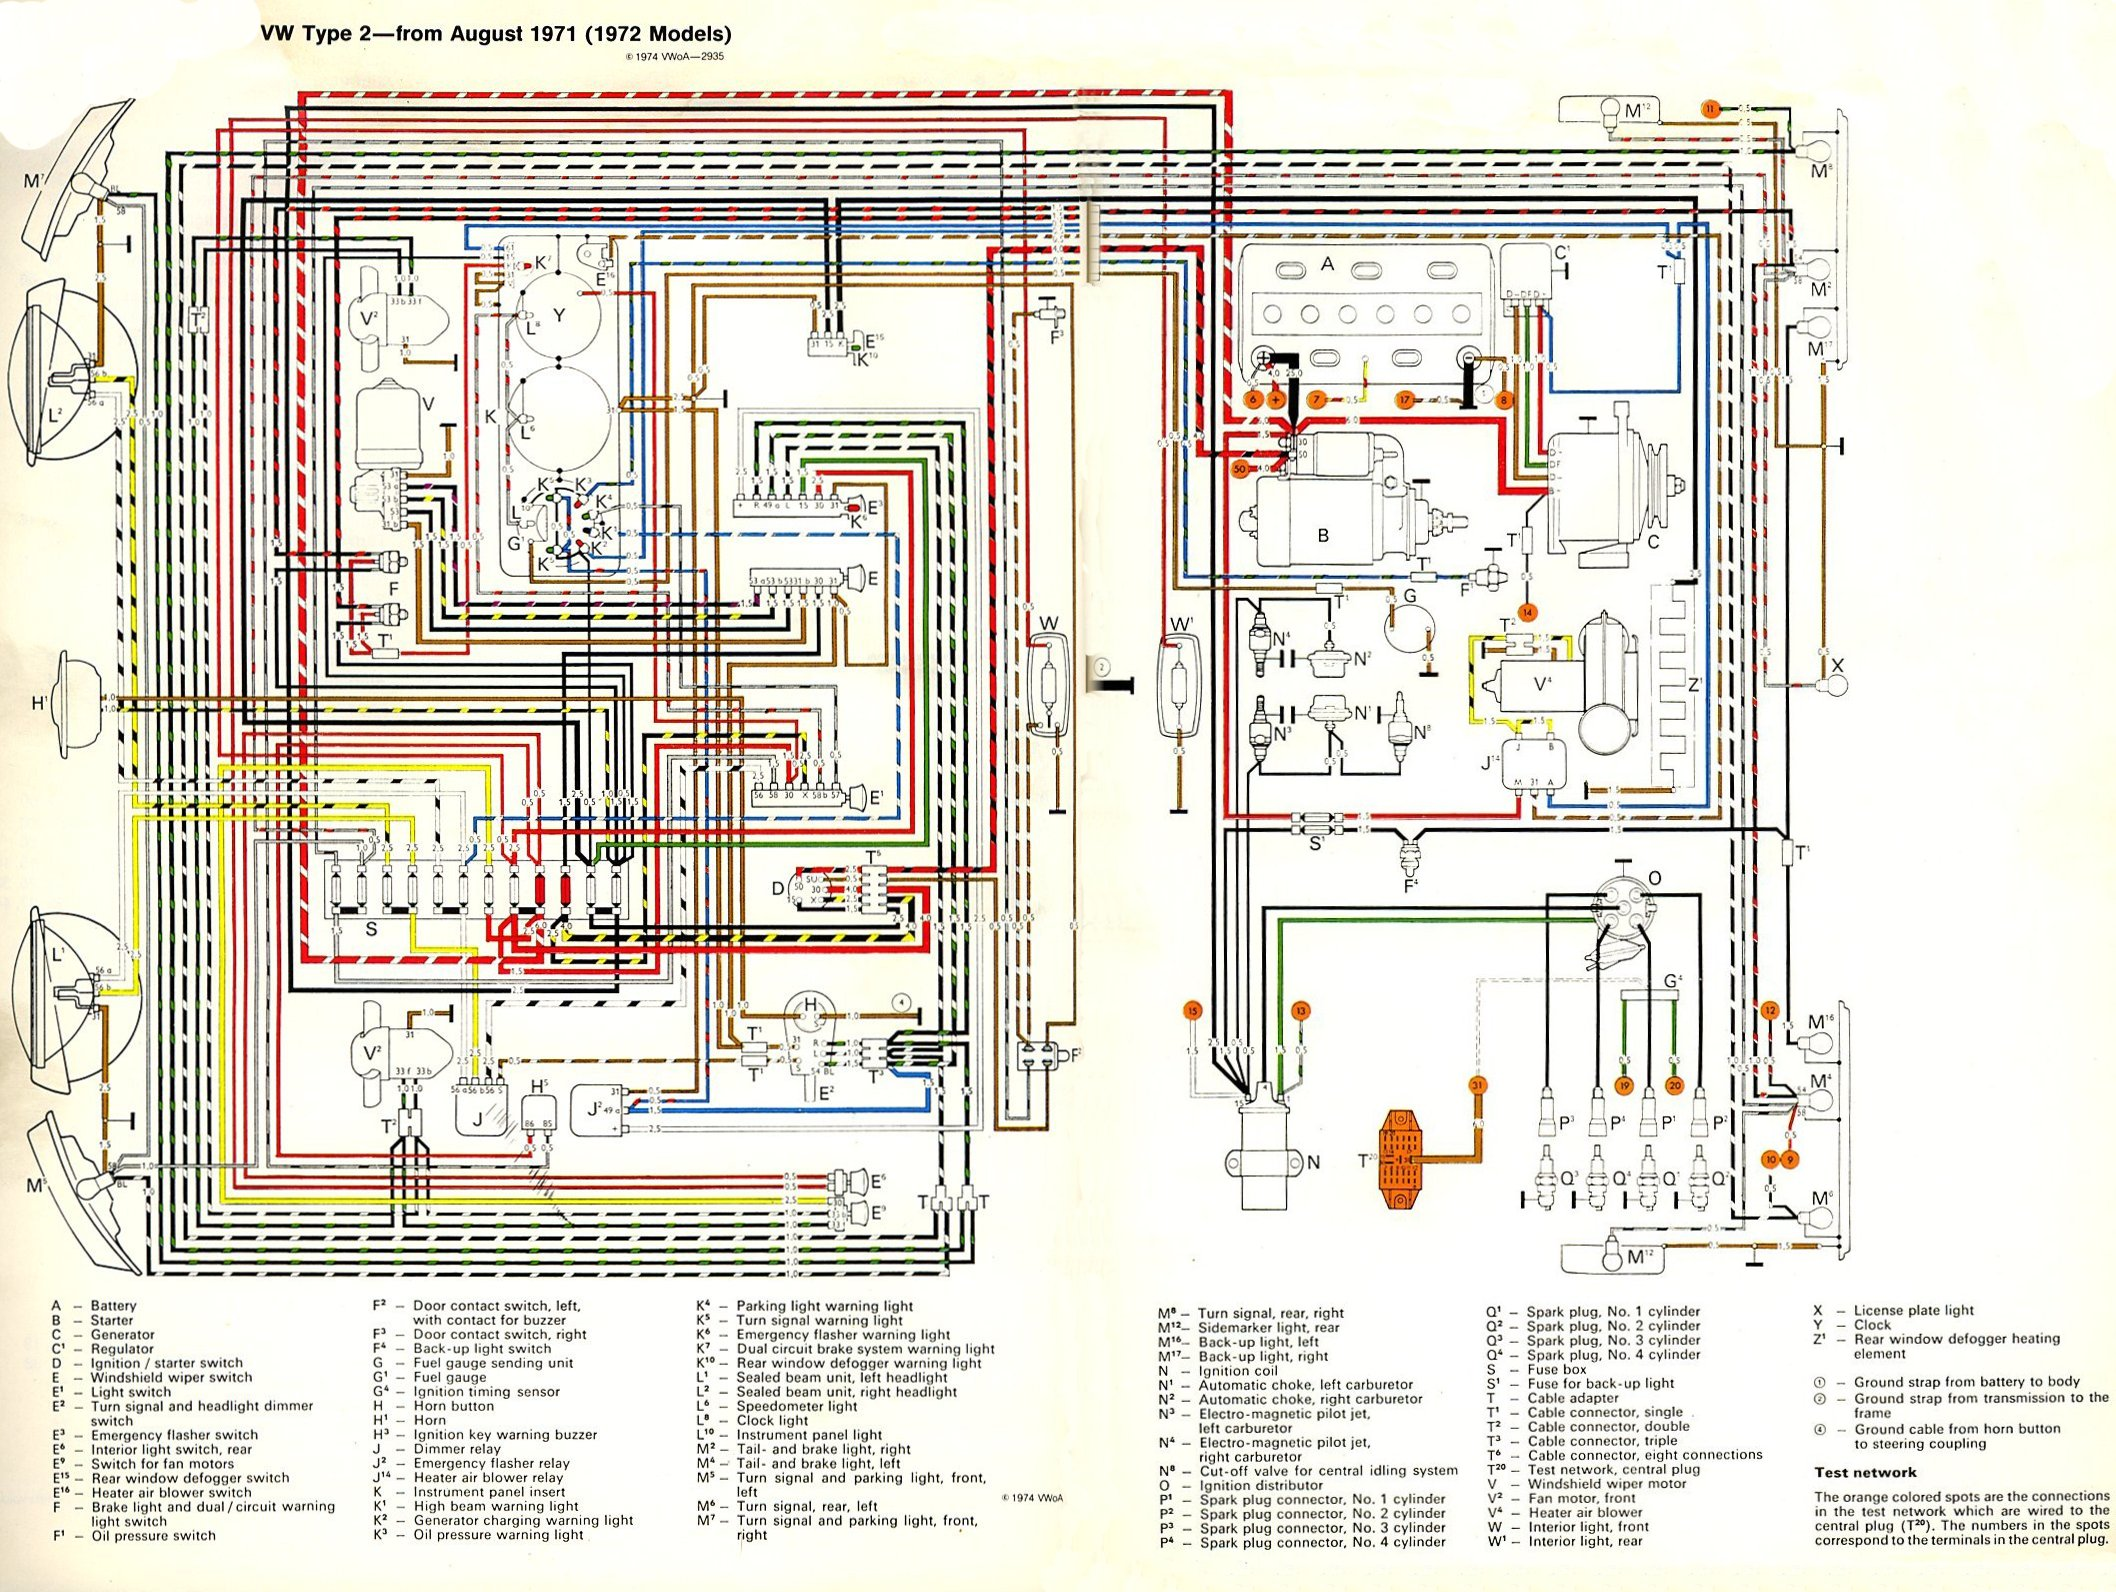 1973 vw van wiring diagram trusted wiring diagrams u2022 rh sivamuni com 73 vw beetle alternator wiring